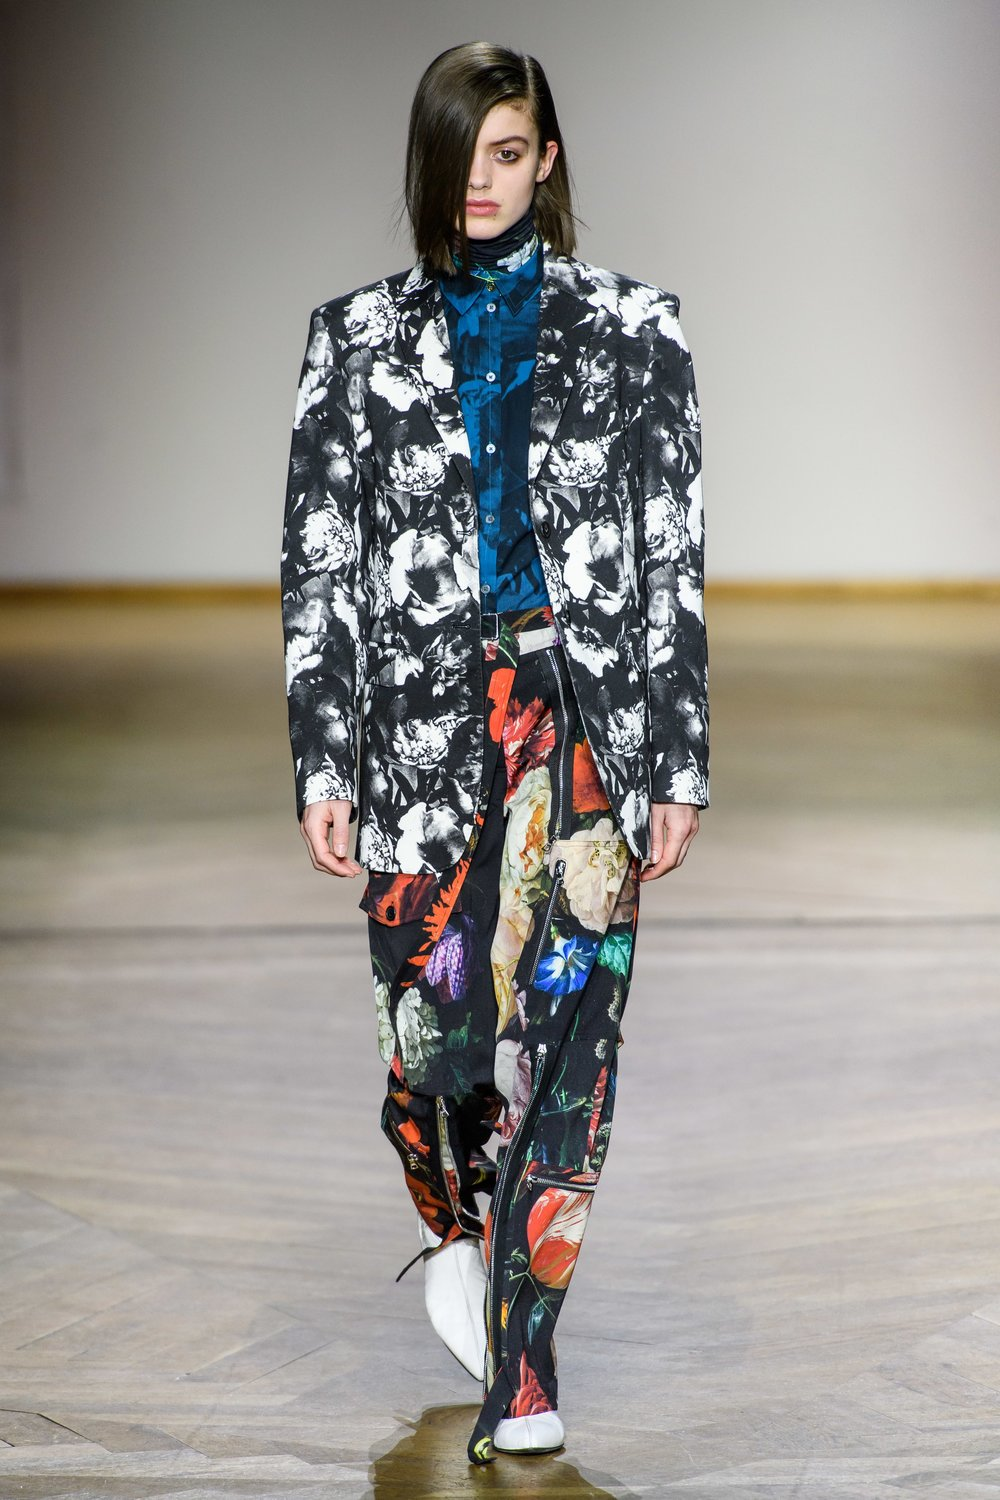 FW - Paul Smith 2019 3.jpg